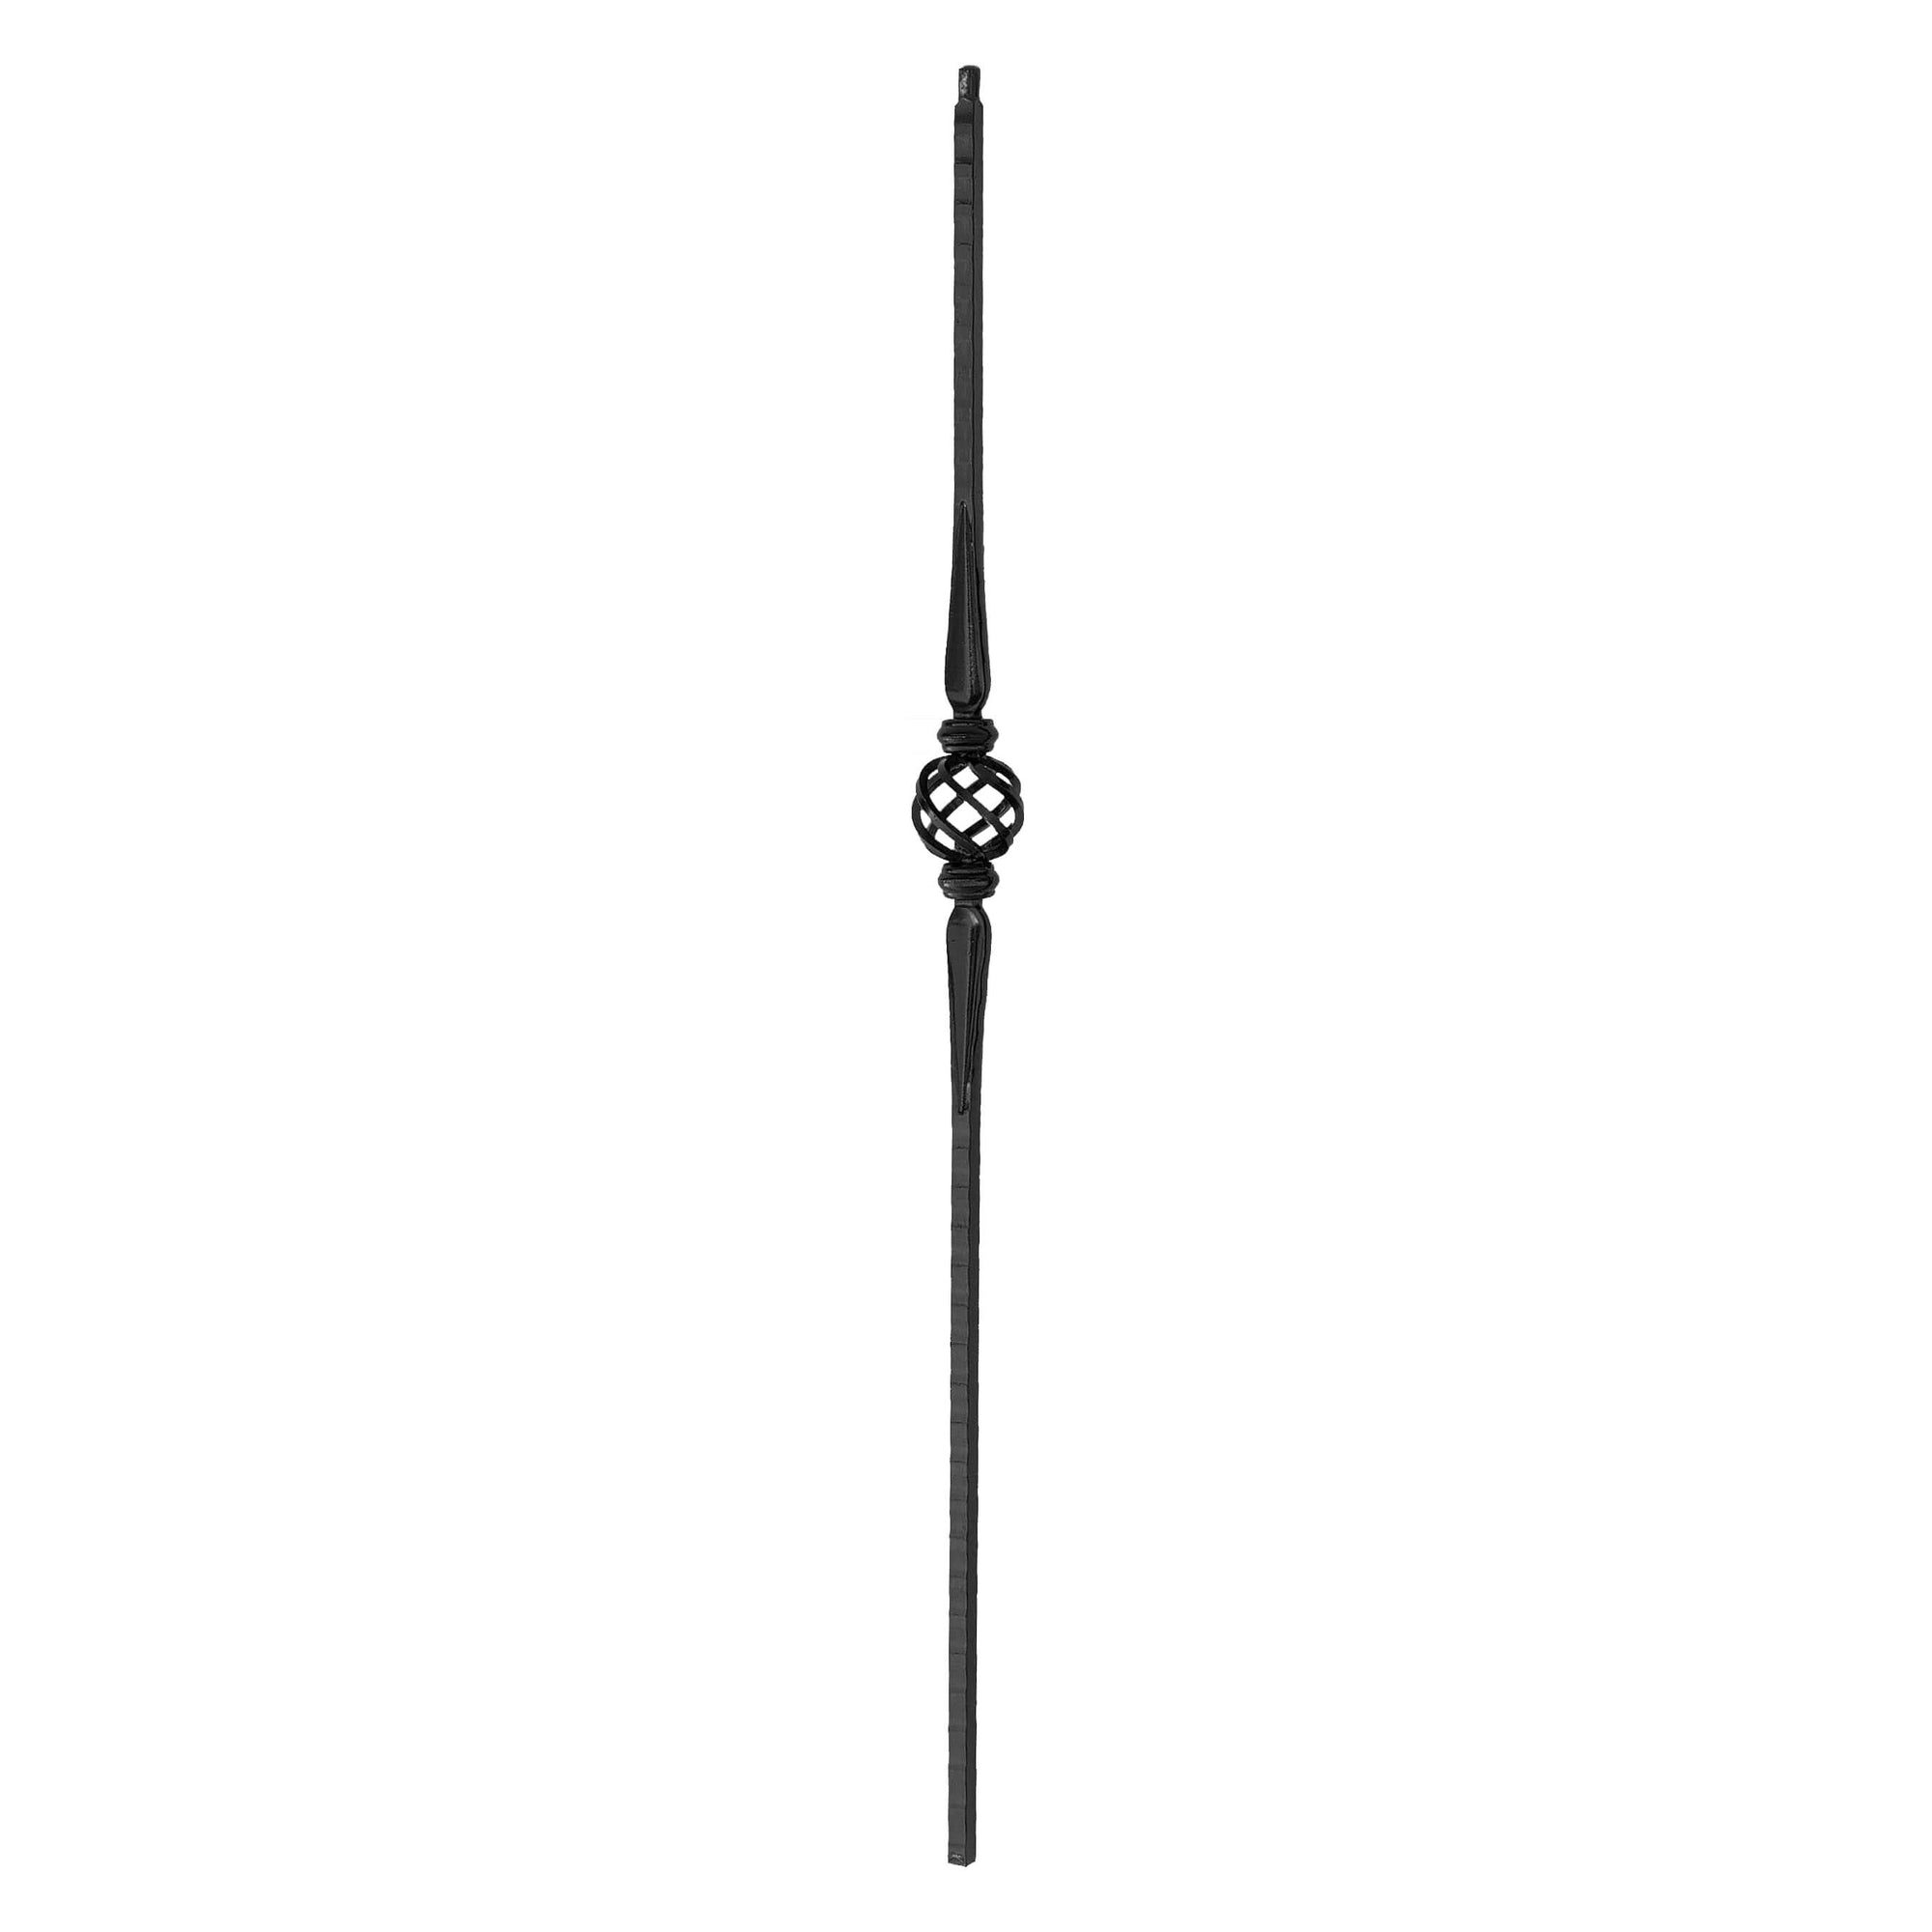 "Face Hammered Series 9/16"" Square x 44""H Double Spoon Single Basket Solid Iron Baluster (PC12/1)"